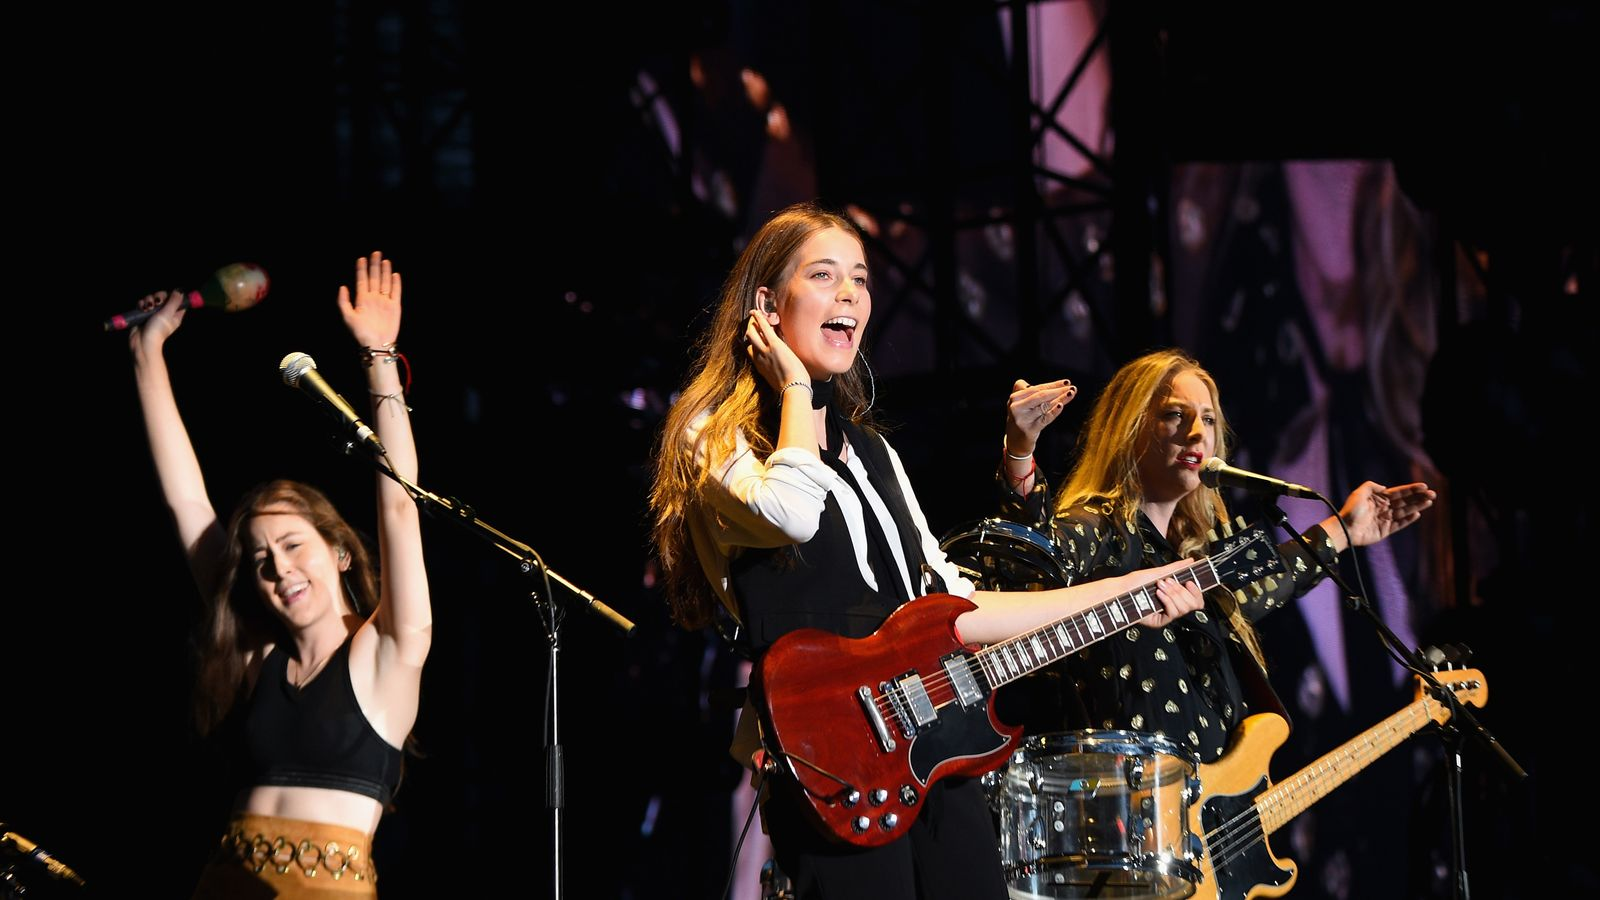 Haim fired agent over 'insane' pay gap at festival